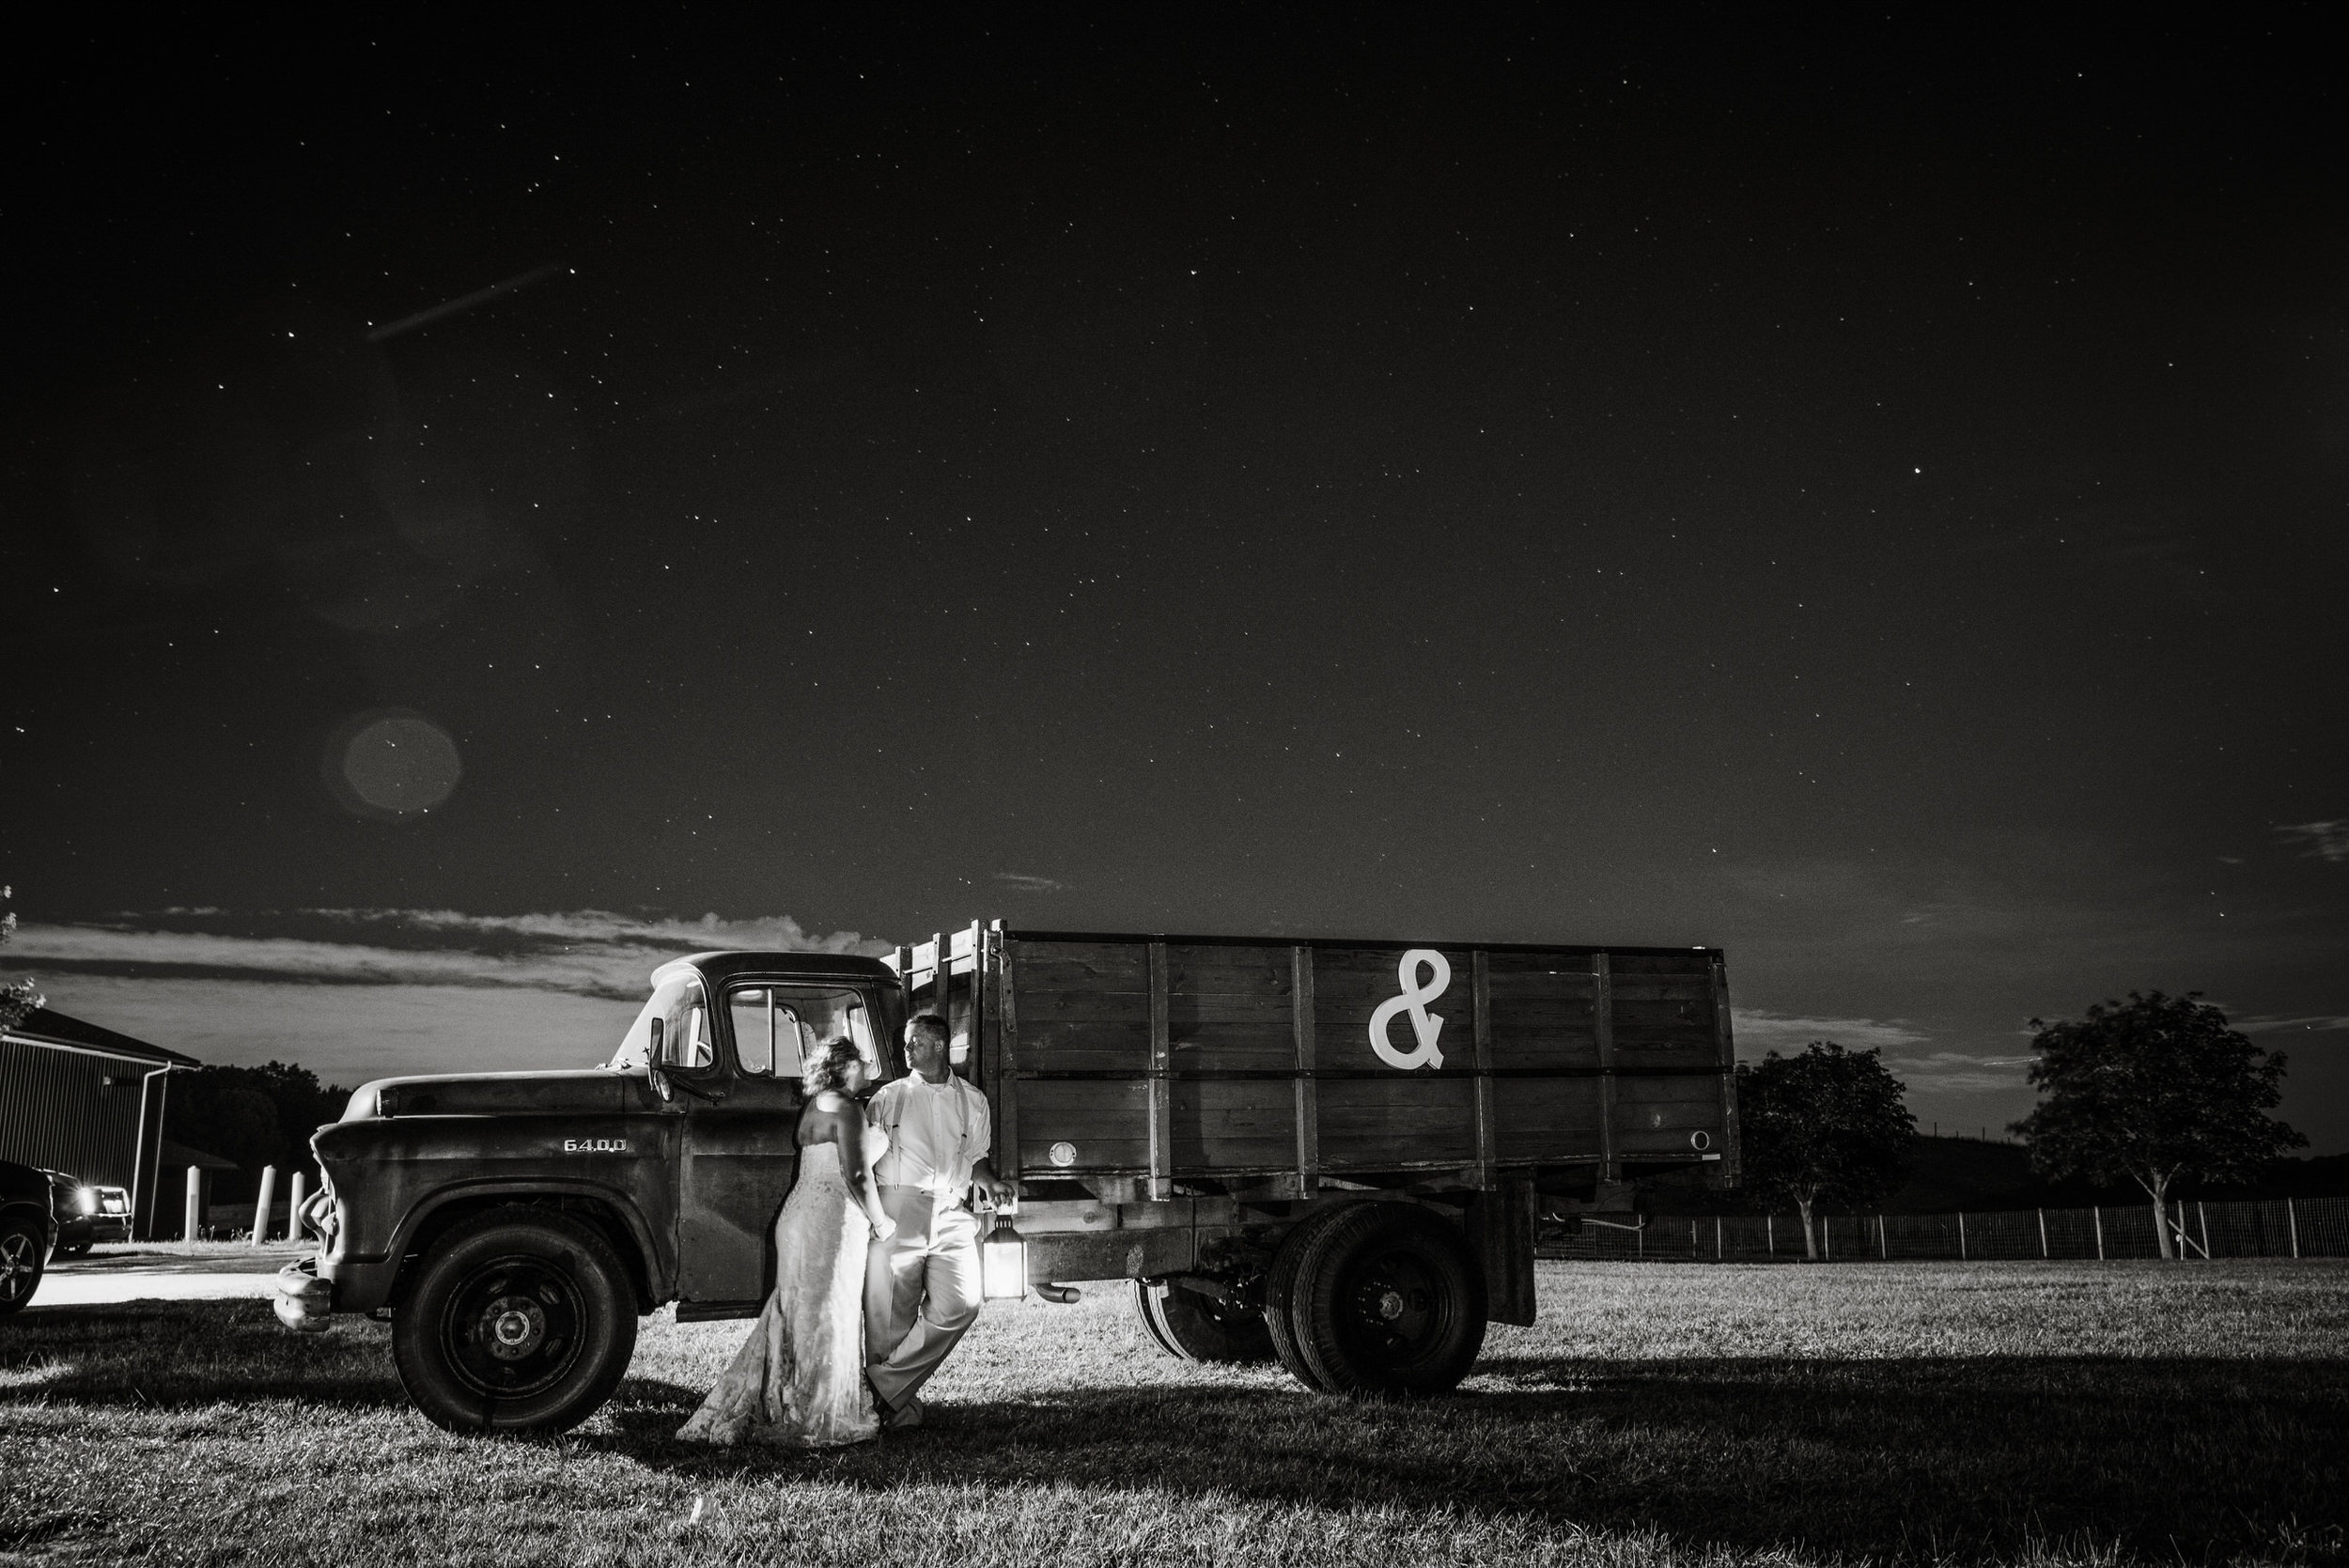 LiganoreWinerywedding-Amber&Andy-Reception-369.jpg